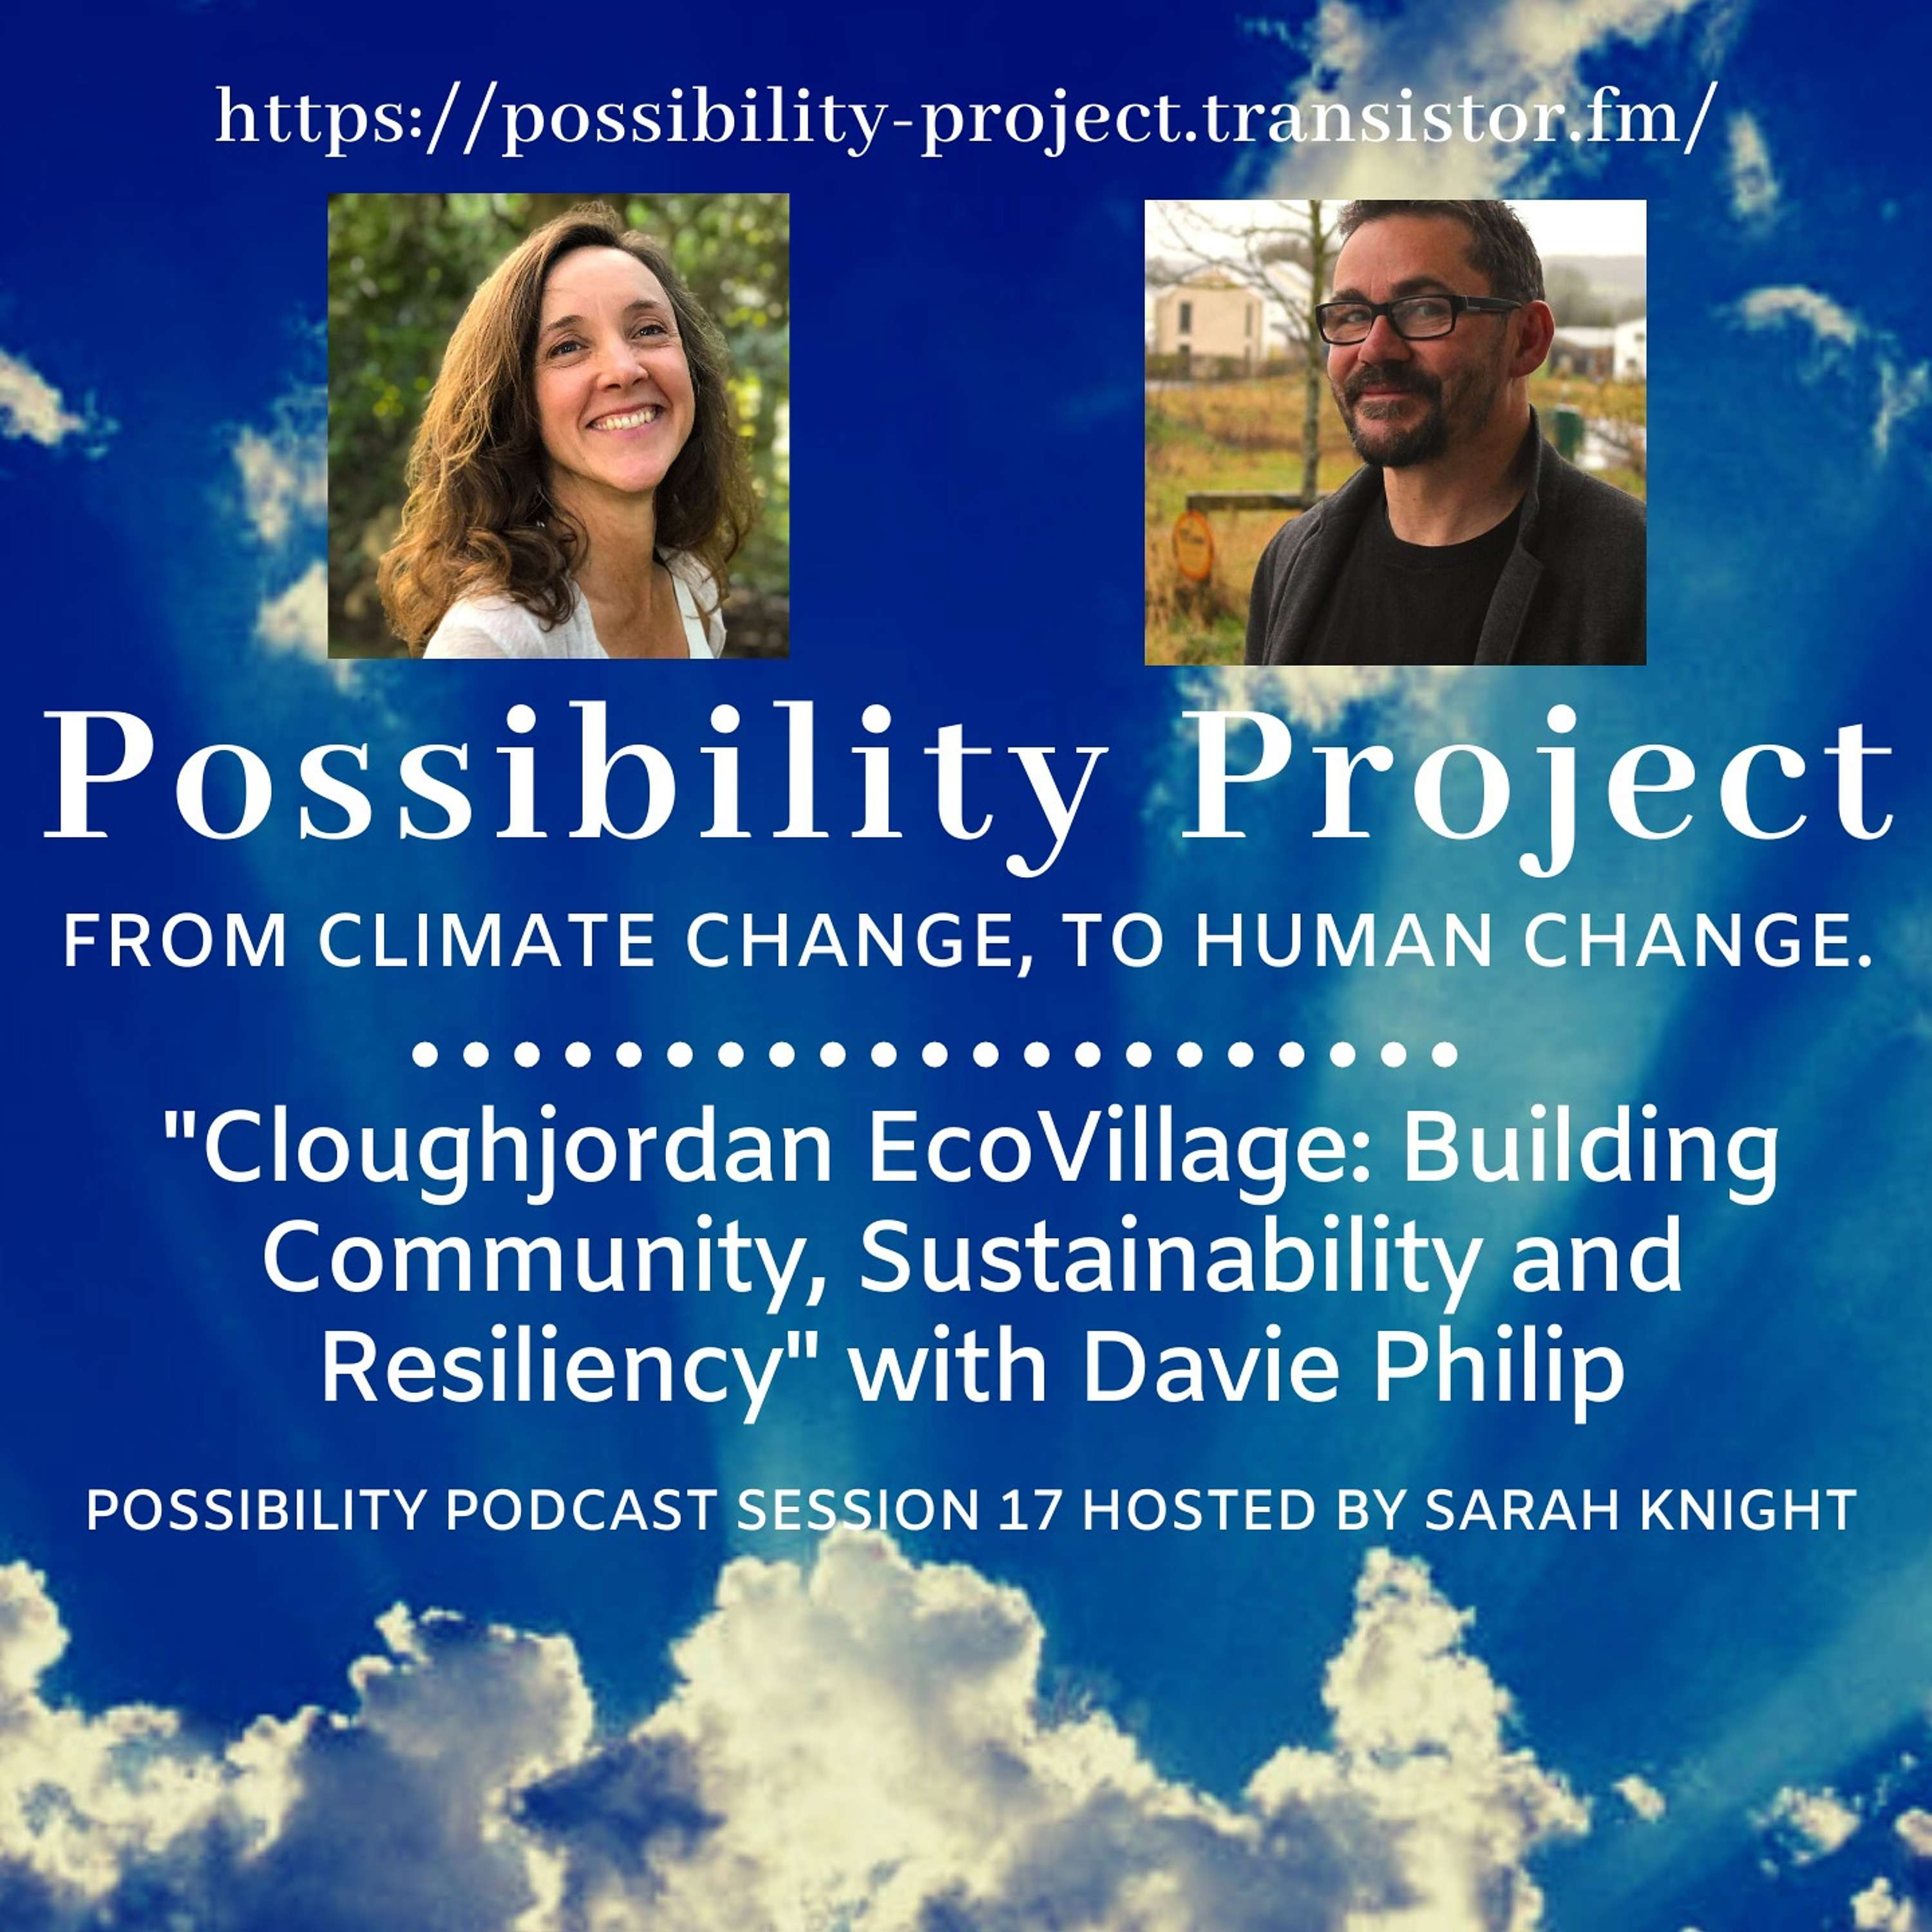 Cloughjordan EcoVillage: Building Community, Sustainability and Resiliency. Possibility Podcast Session 17